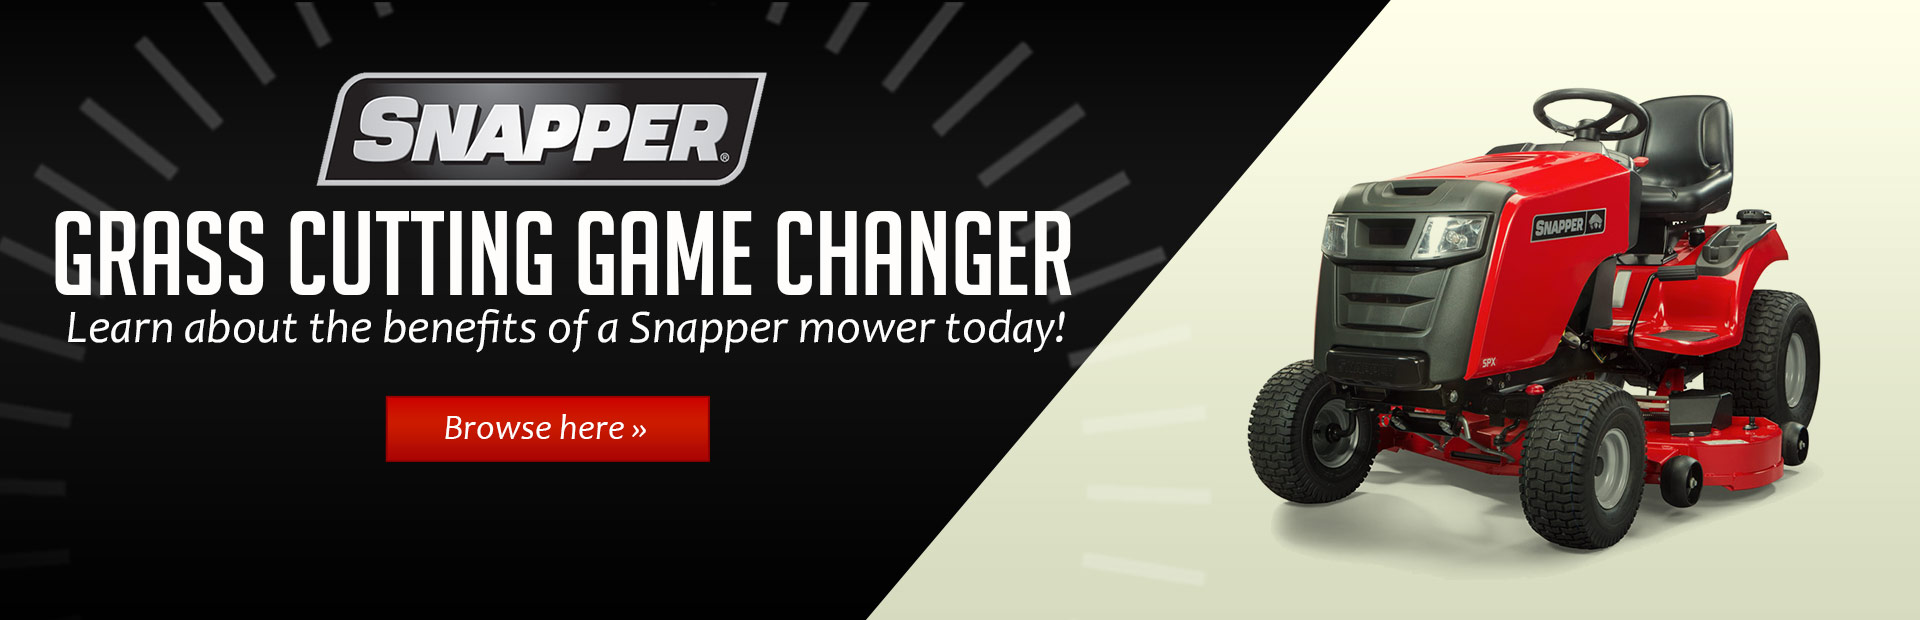 Learn about the benefits of a Snapper mower today! Click here to browse the models.